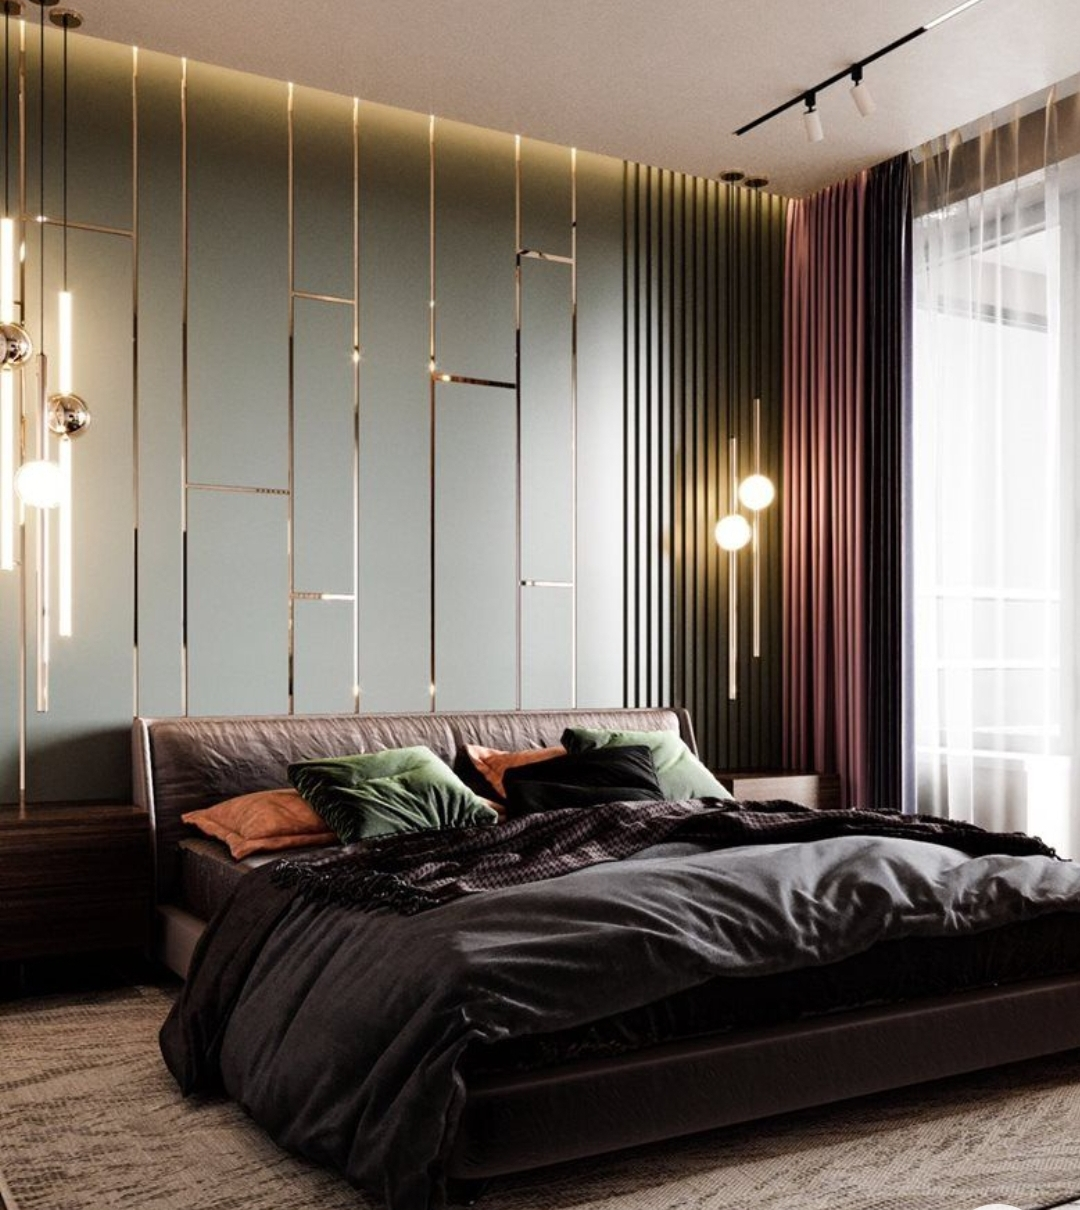 Interior design # interior designer # interior ides for bedroom # bedroom design # creative  bedroom interior #